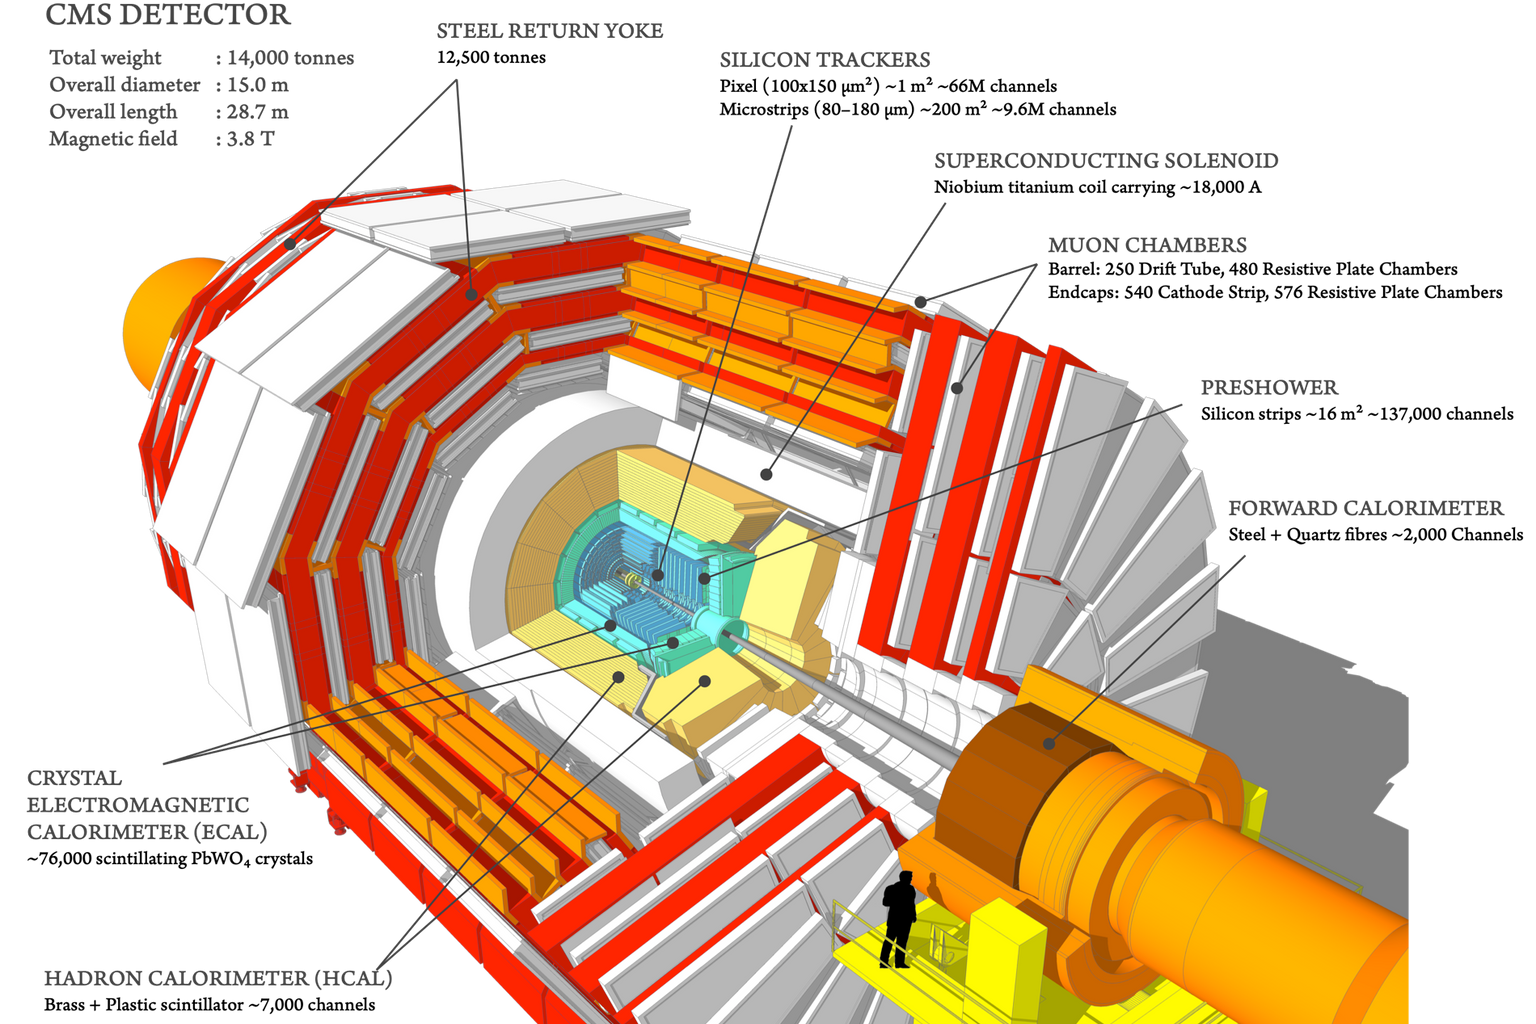 The detector of the CMS experiment at CERN: In the vacuum tube of the circular accelerator (grey, surrounded by a protective envelope drawn in orange) protons move in both directions, causing them to collide in the centre of the detector and produce new particles in the process. These particles are very diverse; each type is detected by different layers of the detector. The second innermost layer is the crystal detector (green), which can detect photons (light particles), among other things. Such crystal detectors – on a smaller scale – form the basis of PET scanners.